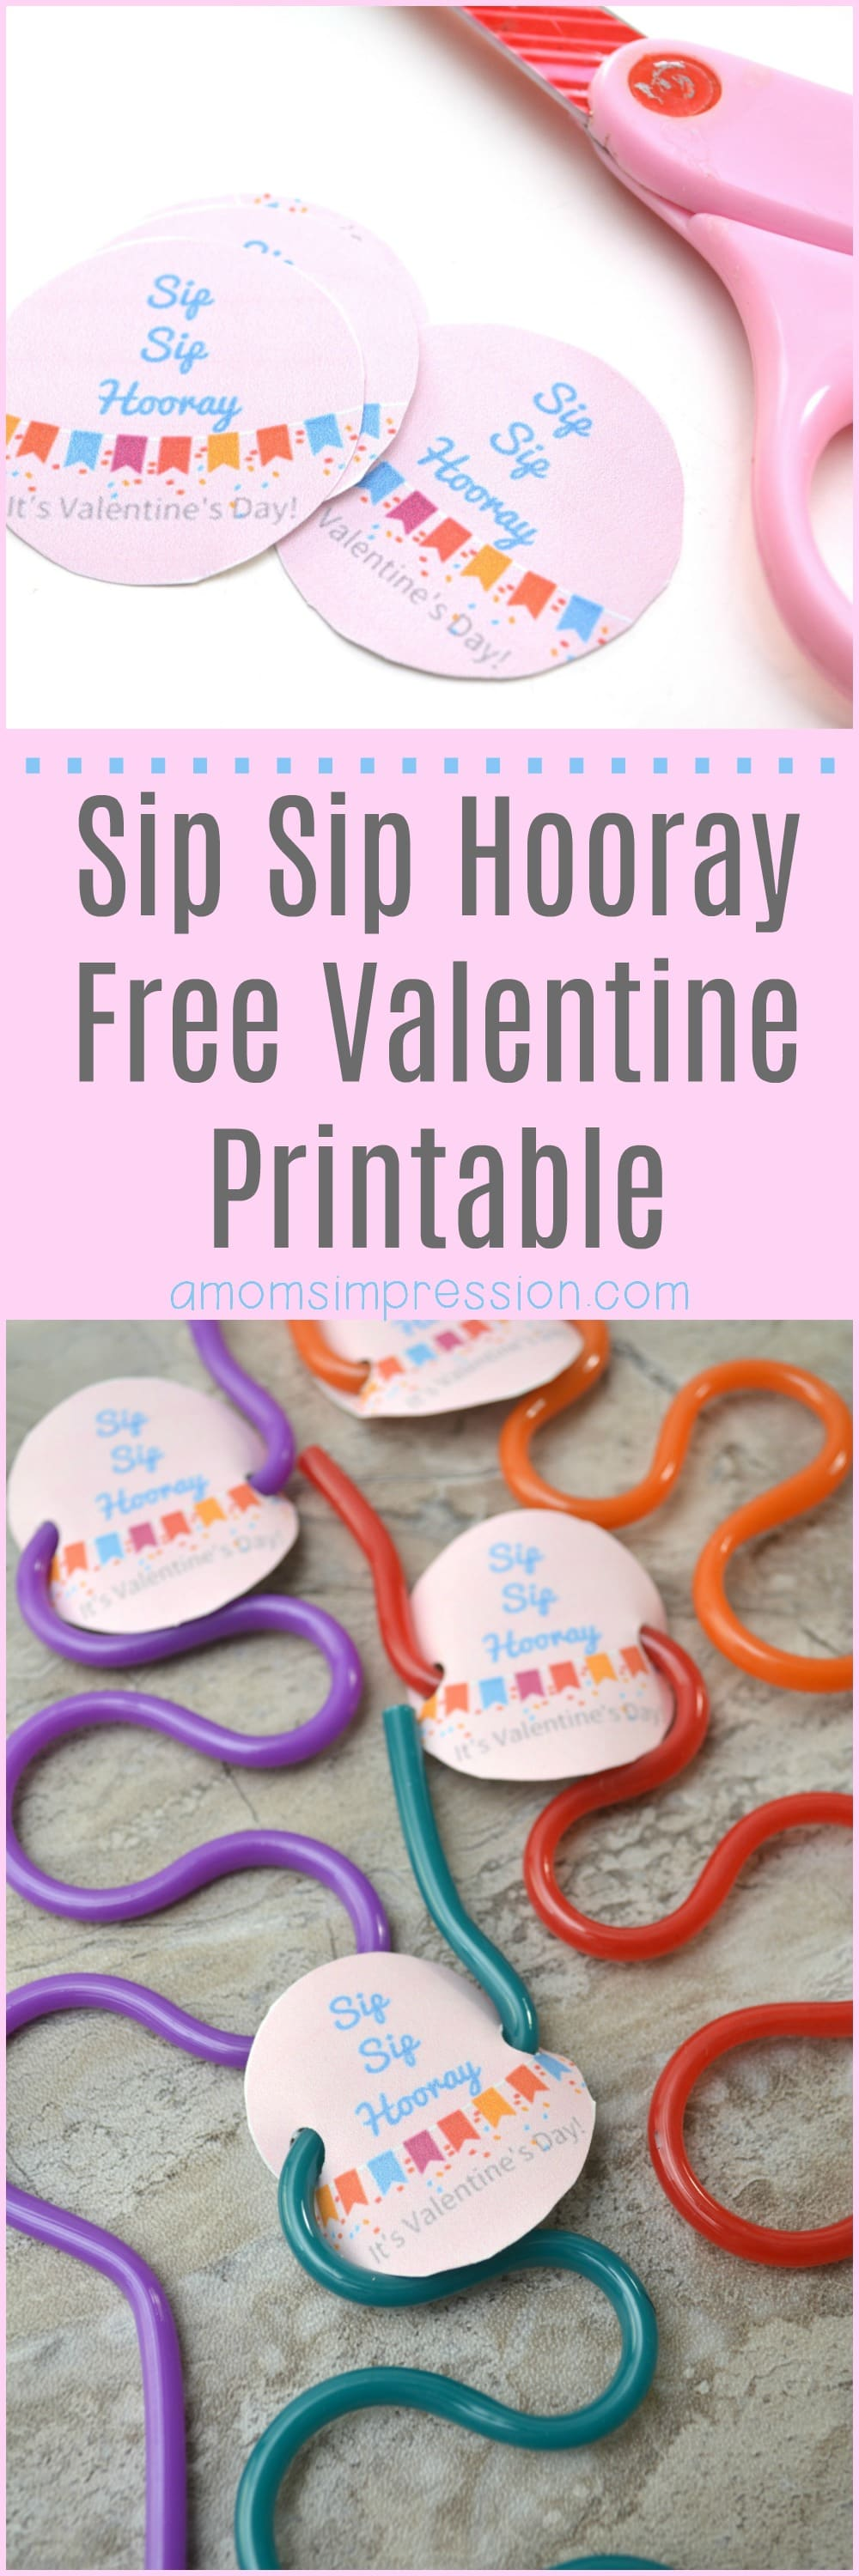 "In search of some non candy Valentine Ideas for your child's class? These fun crazy straws come with a free ""Sip Sip Hooray"" printable that are perfect for both boys and girls!"